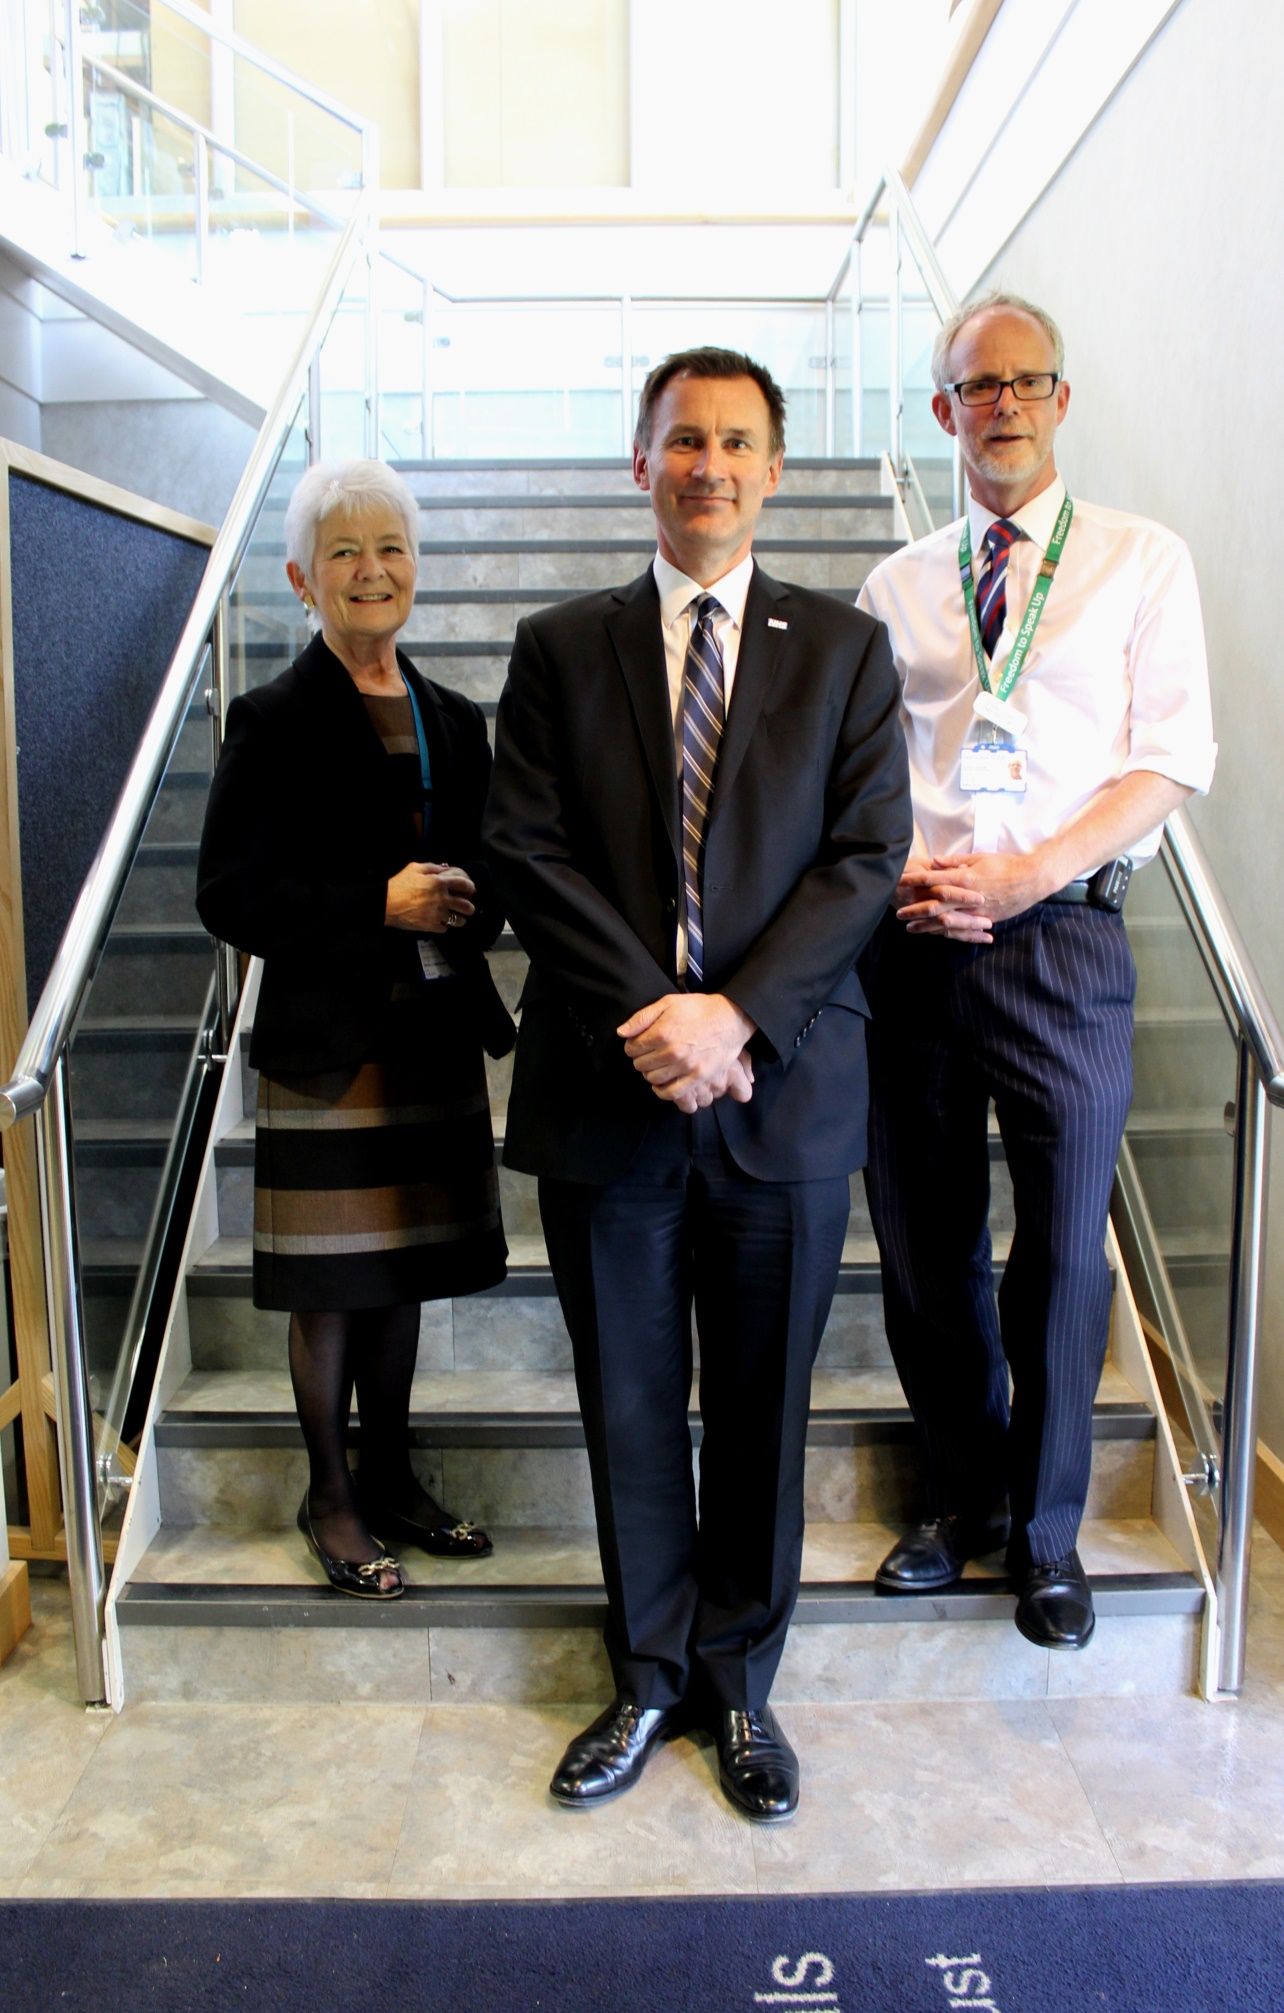 From left to right: Sheila Childerhouse, Trust chair, the Rt Hon Jeremy Hunt MP, and Trust chief executive Dr Stephen Dunn